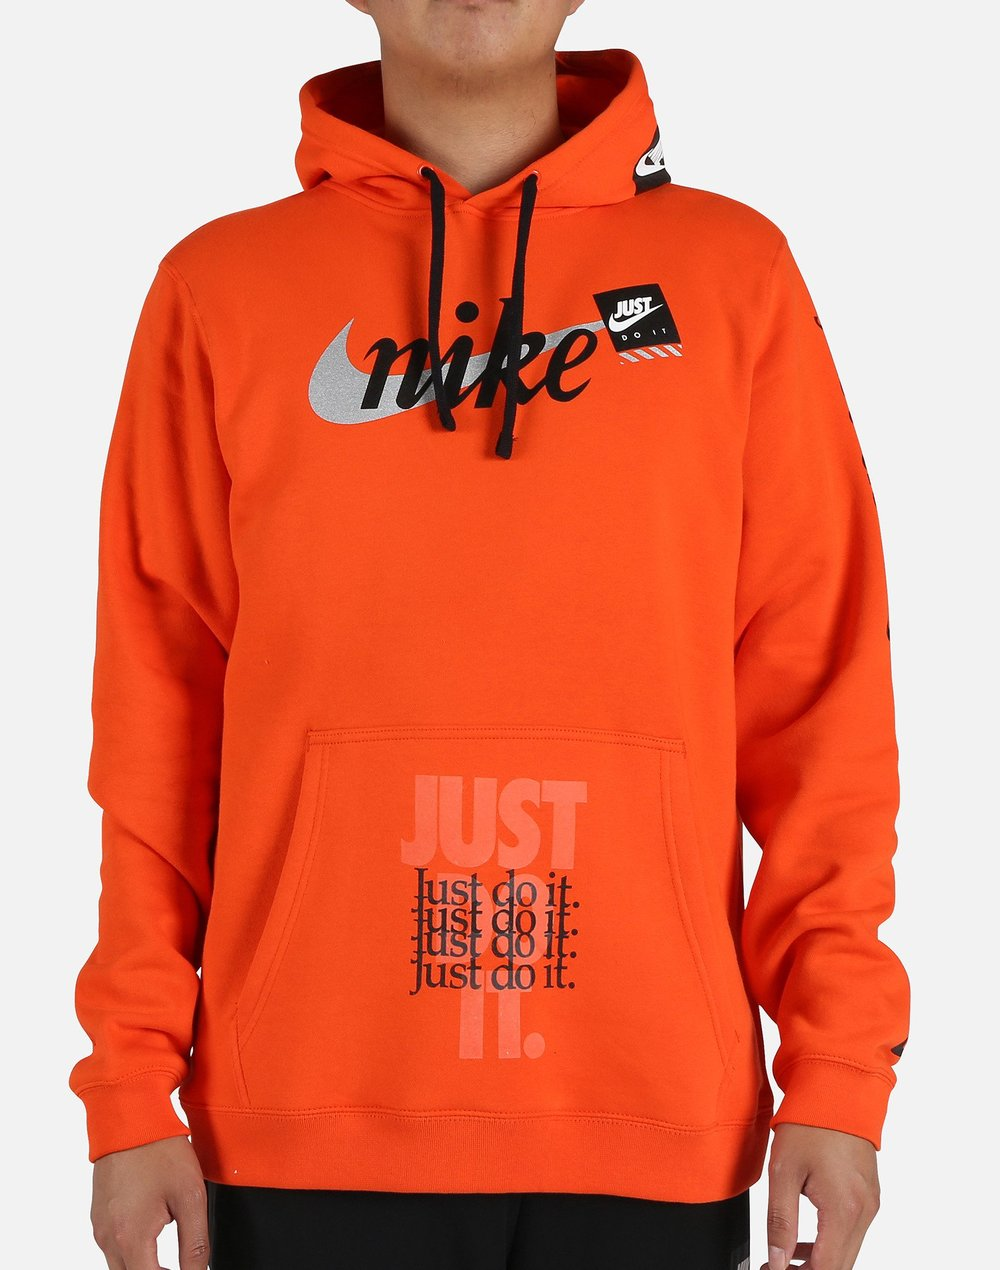 94191cda Now Available: Nike Sportswear Just Do It Hoodie